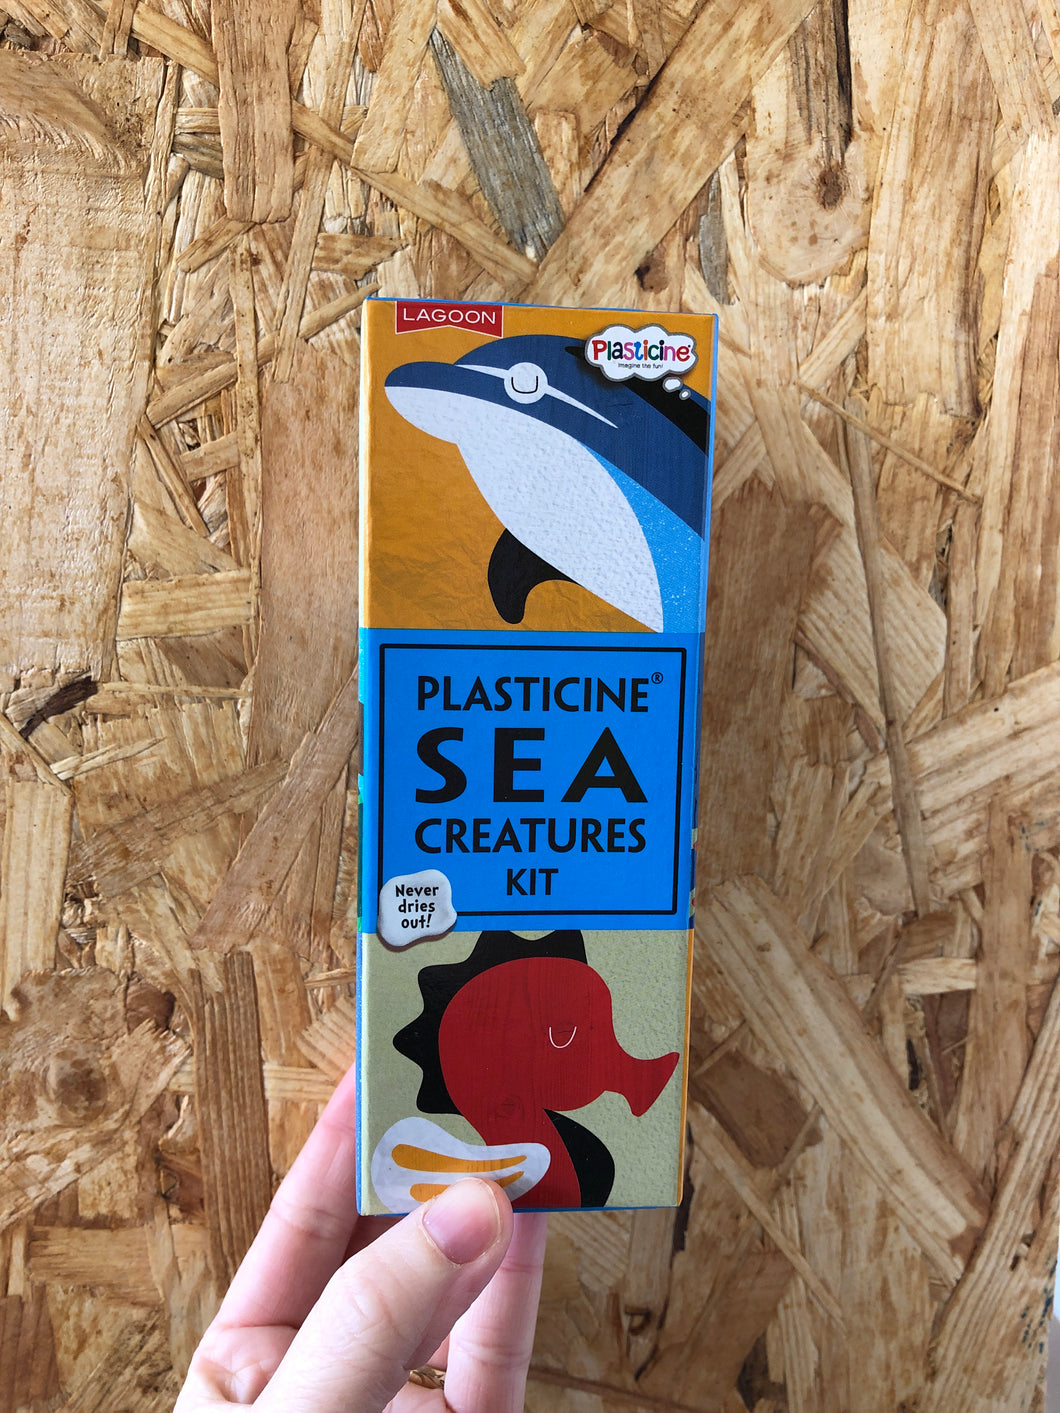 Plasticine Animals Kit by Lagoon